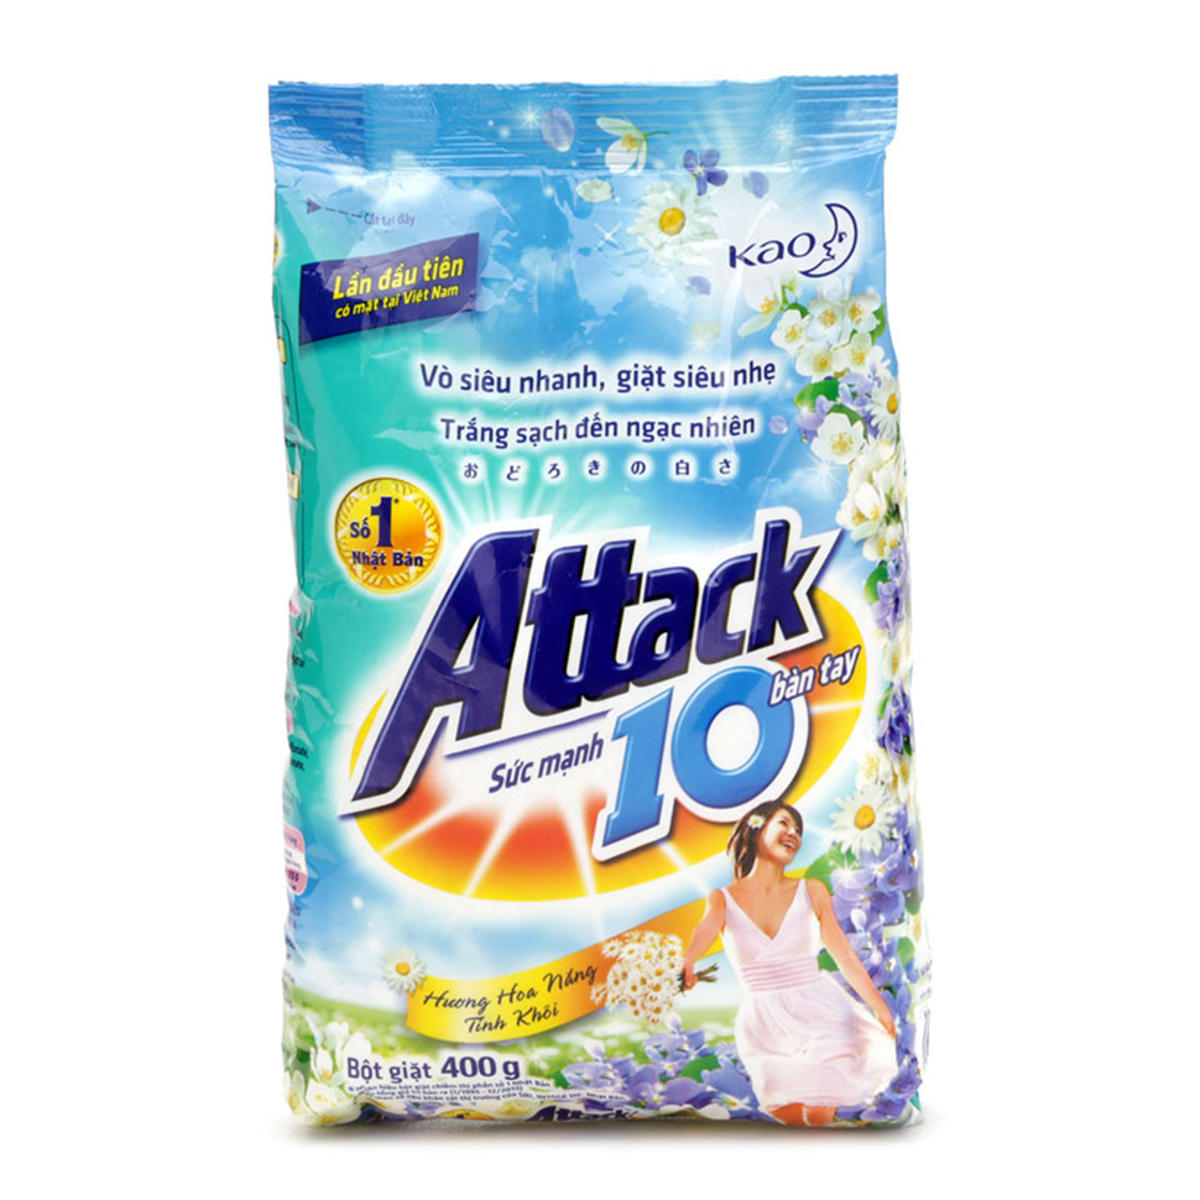 ATTACK WASHING POWDER SUNSHINE FRESH 4.1KG X 3 PACKS